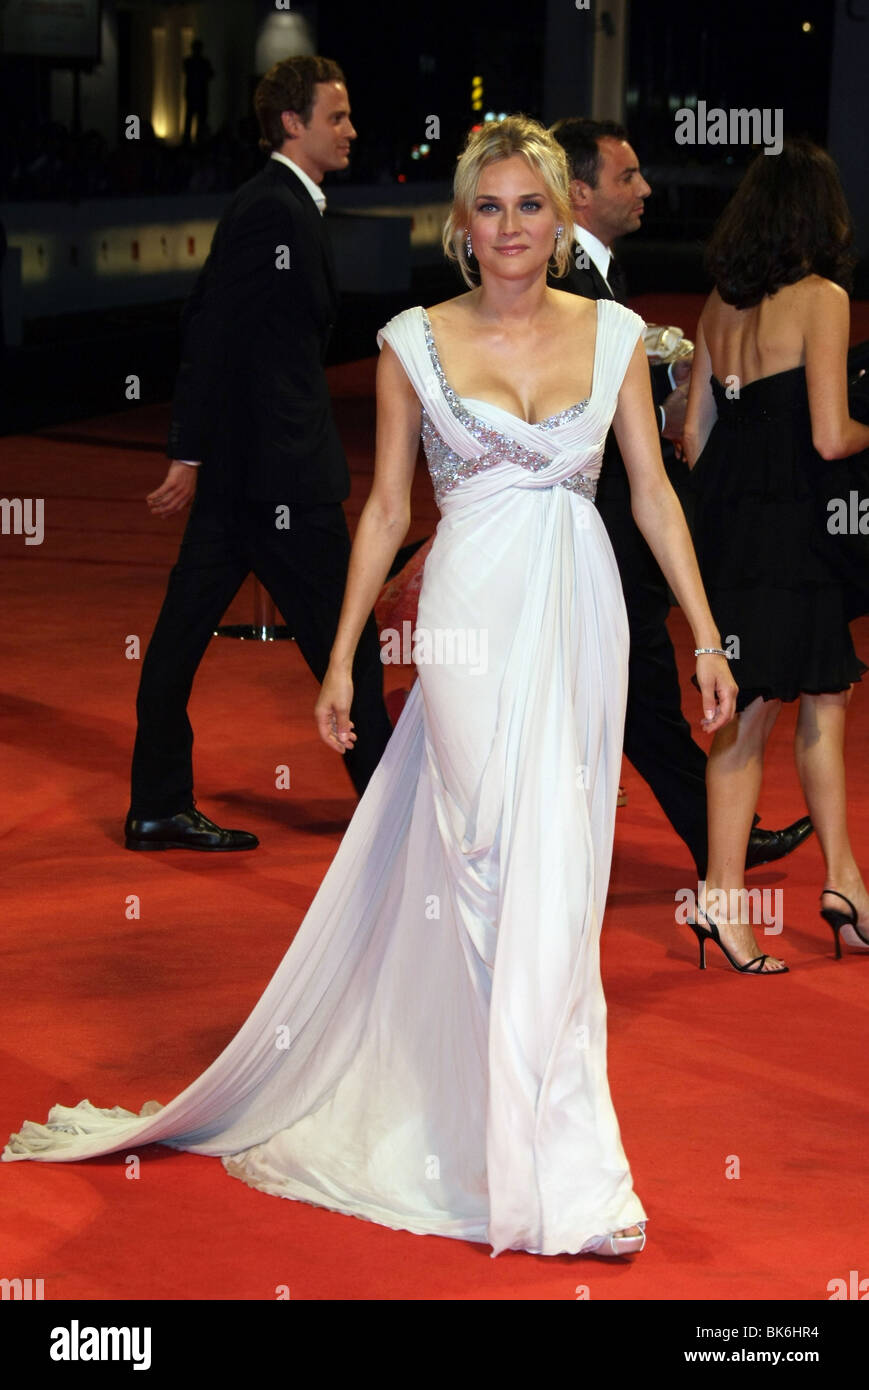 DIANE KRUGER THE HUNTING PARTY PREMIERE 64TH VENICE FILM FESTIVAL LIDO VENICE ITALY 03 September 2007 - Stock Image